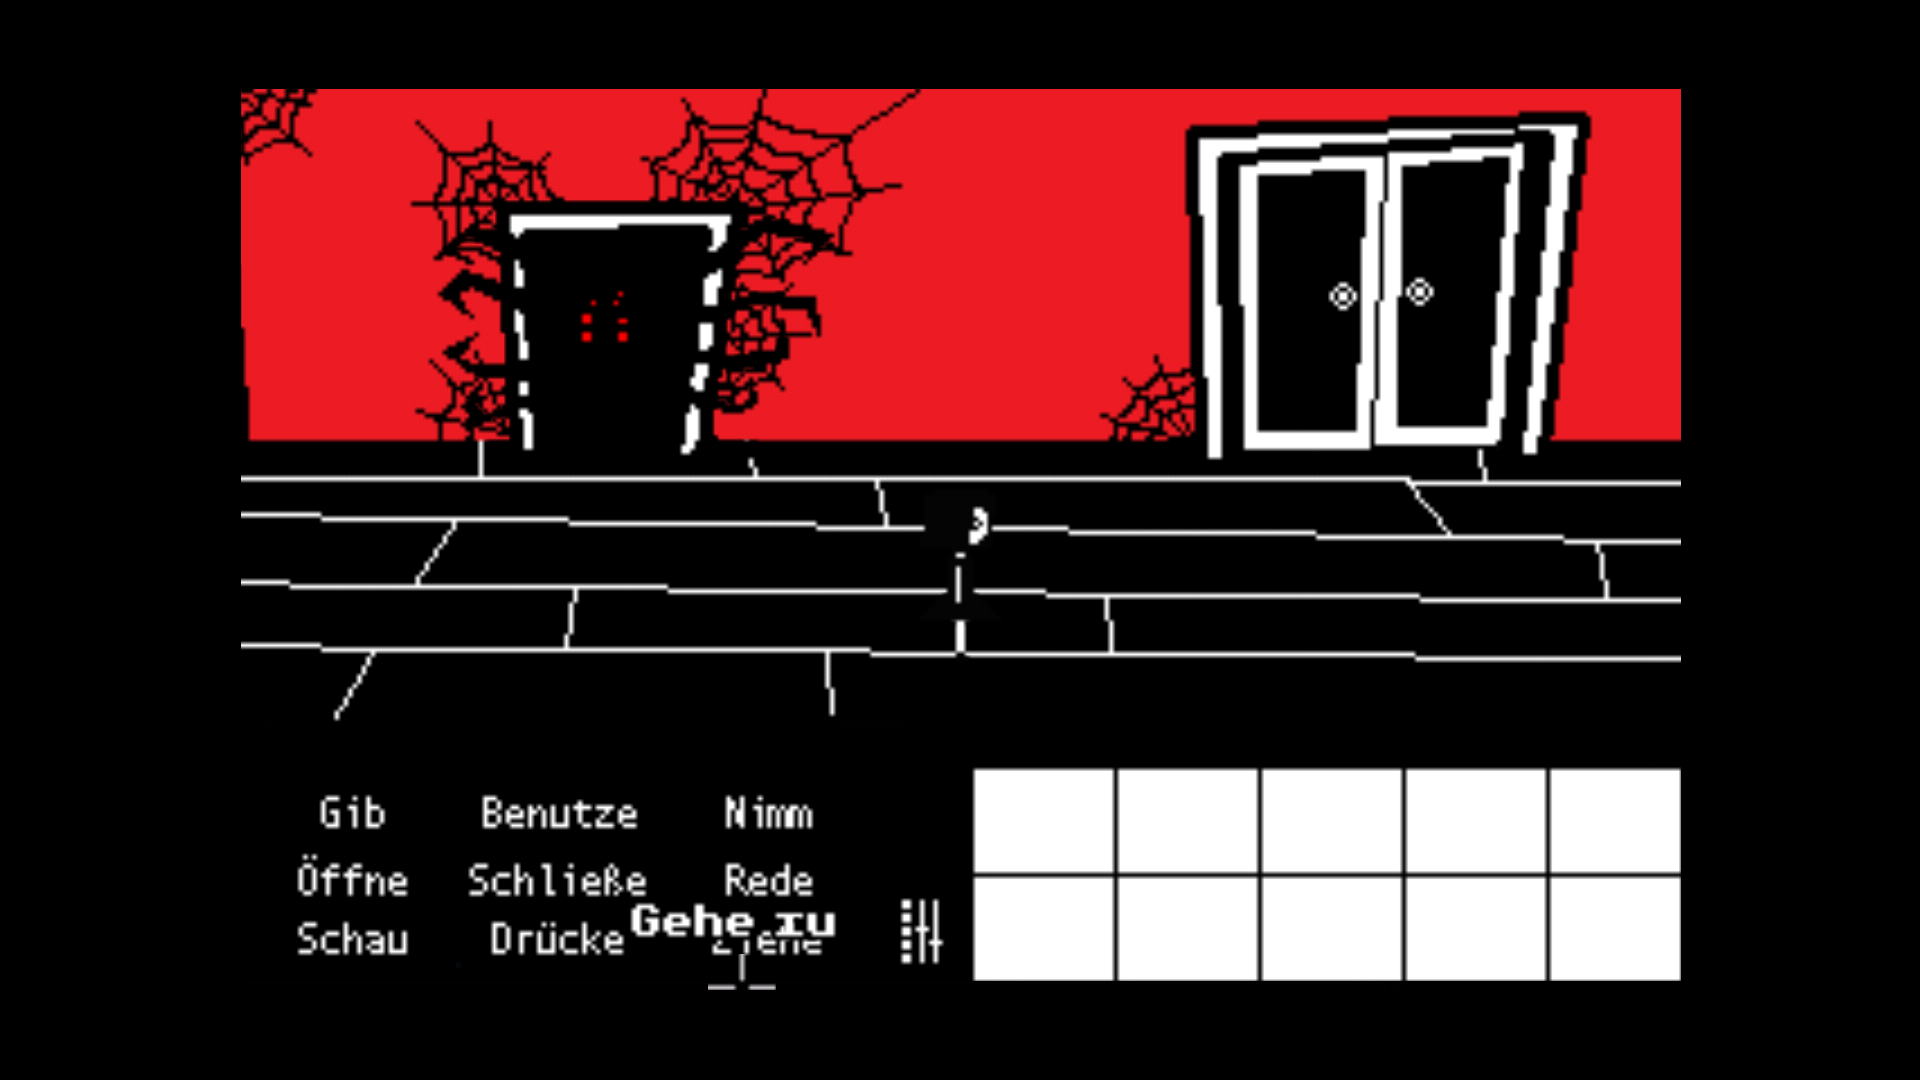 Screenshot 2 of The House Without Windows